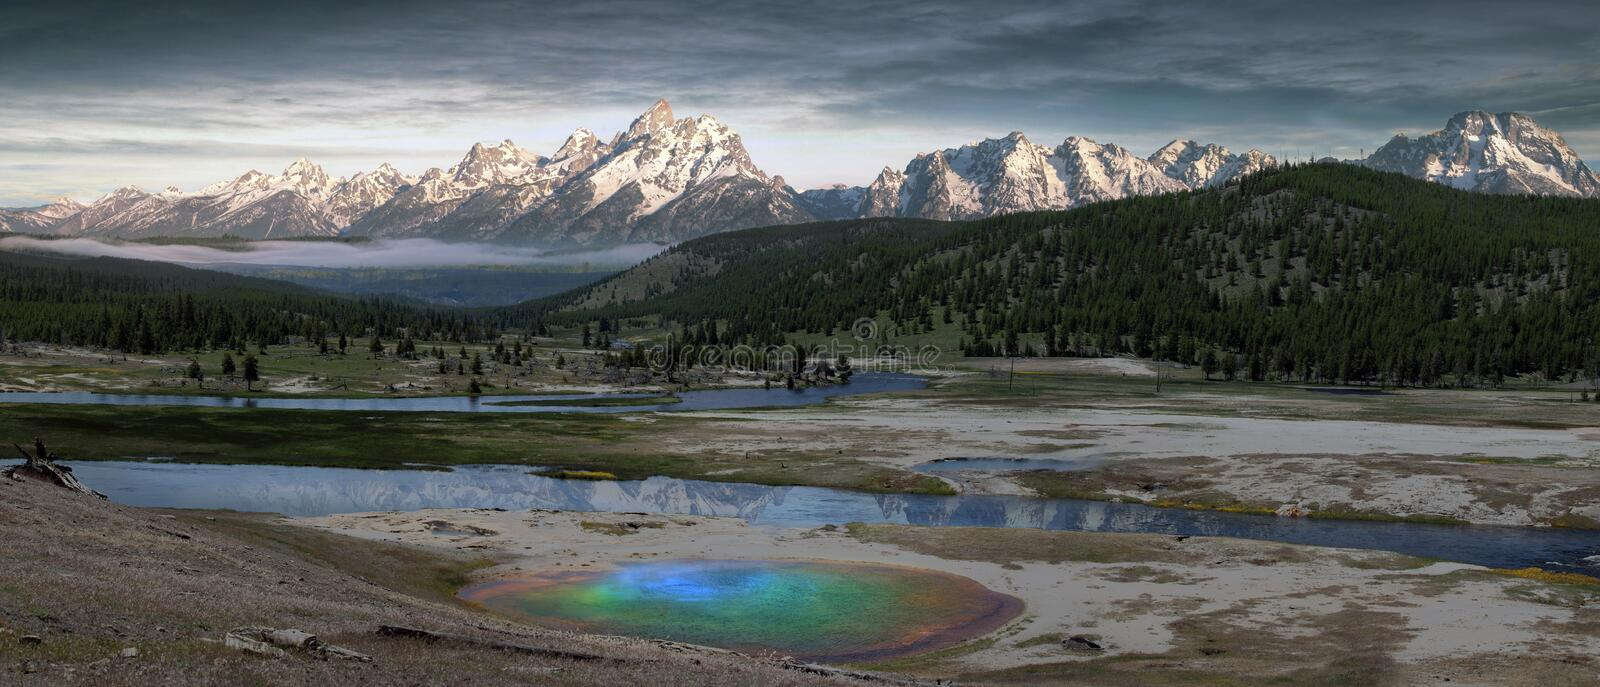 Geyser at Yellowstone. Panorama of a colorful geyser at Yellowstone National Park stock photos